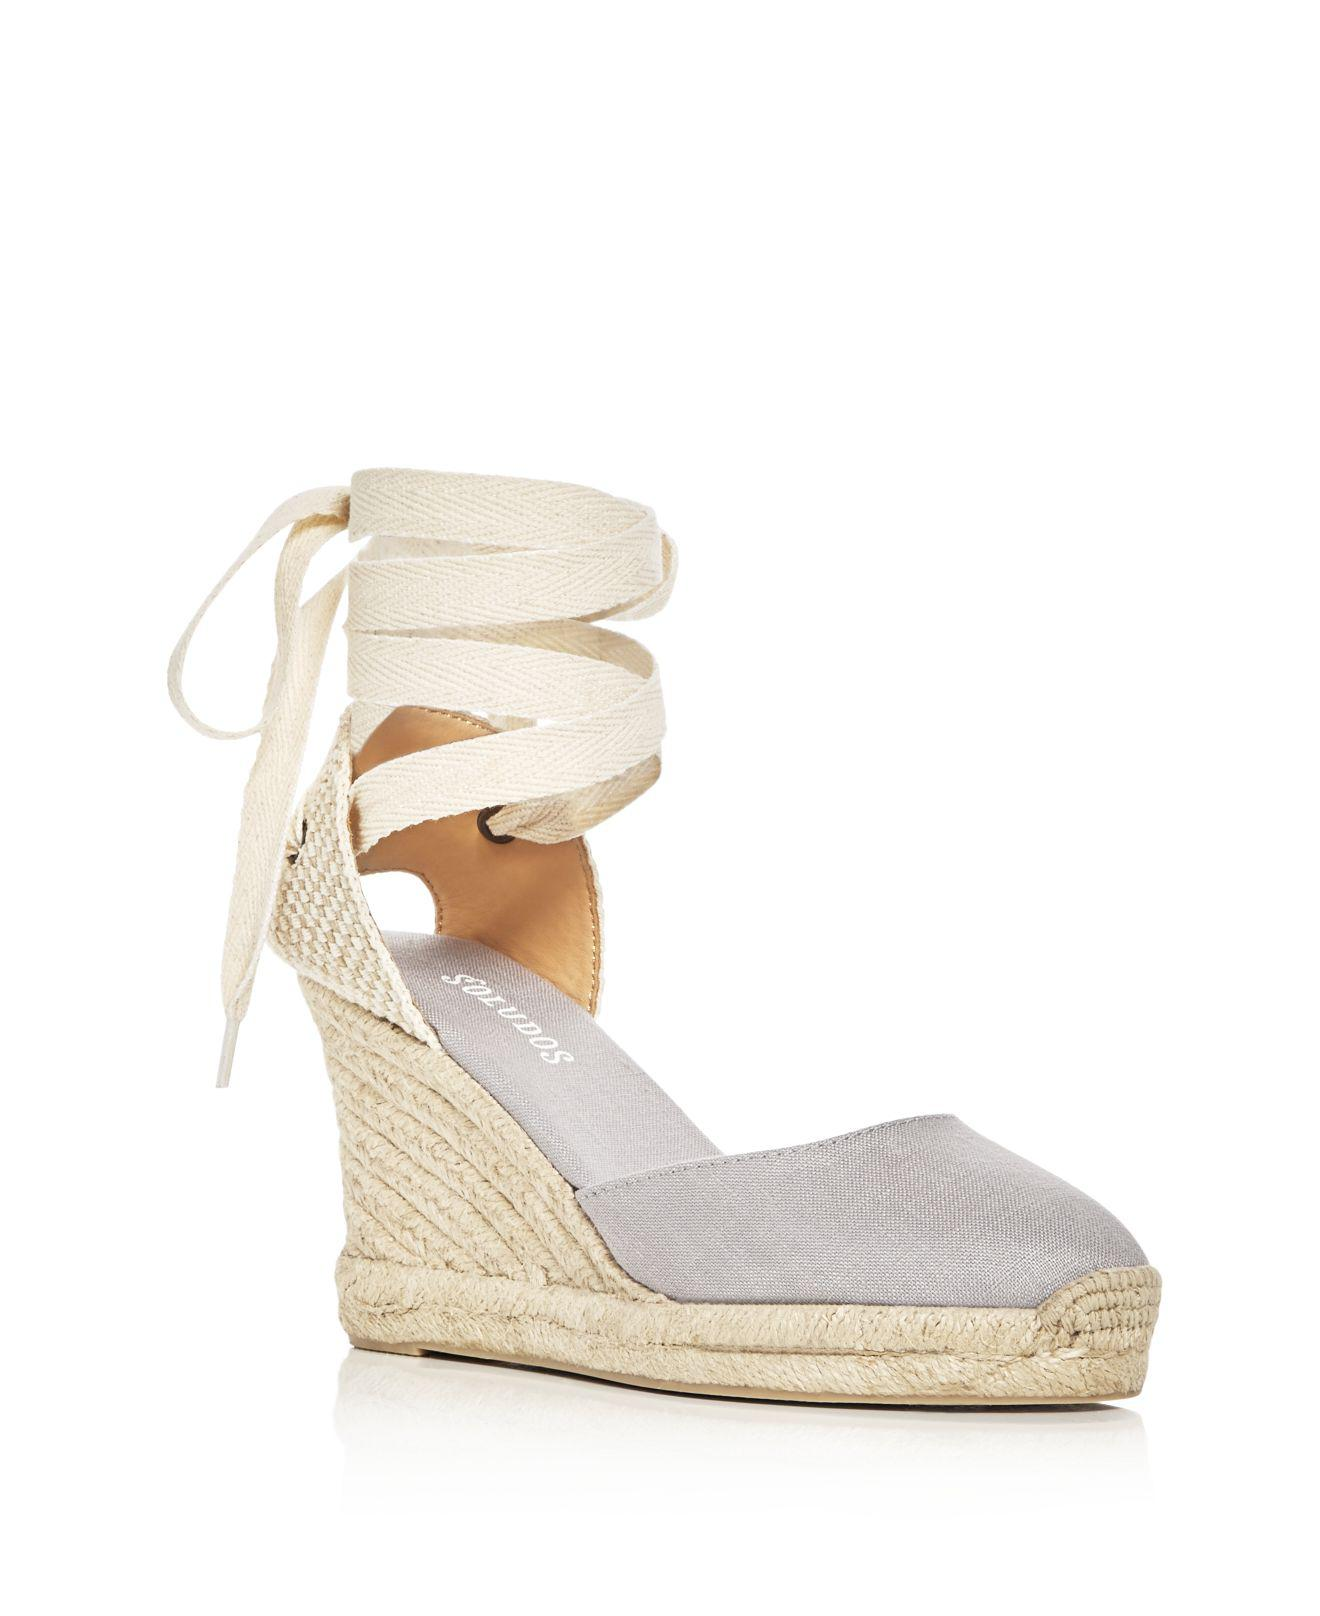 13d1cb63c6a Soludos Women s Lace Up Espadrille Wedge Sandals in Gray - Lyst